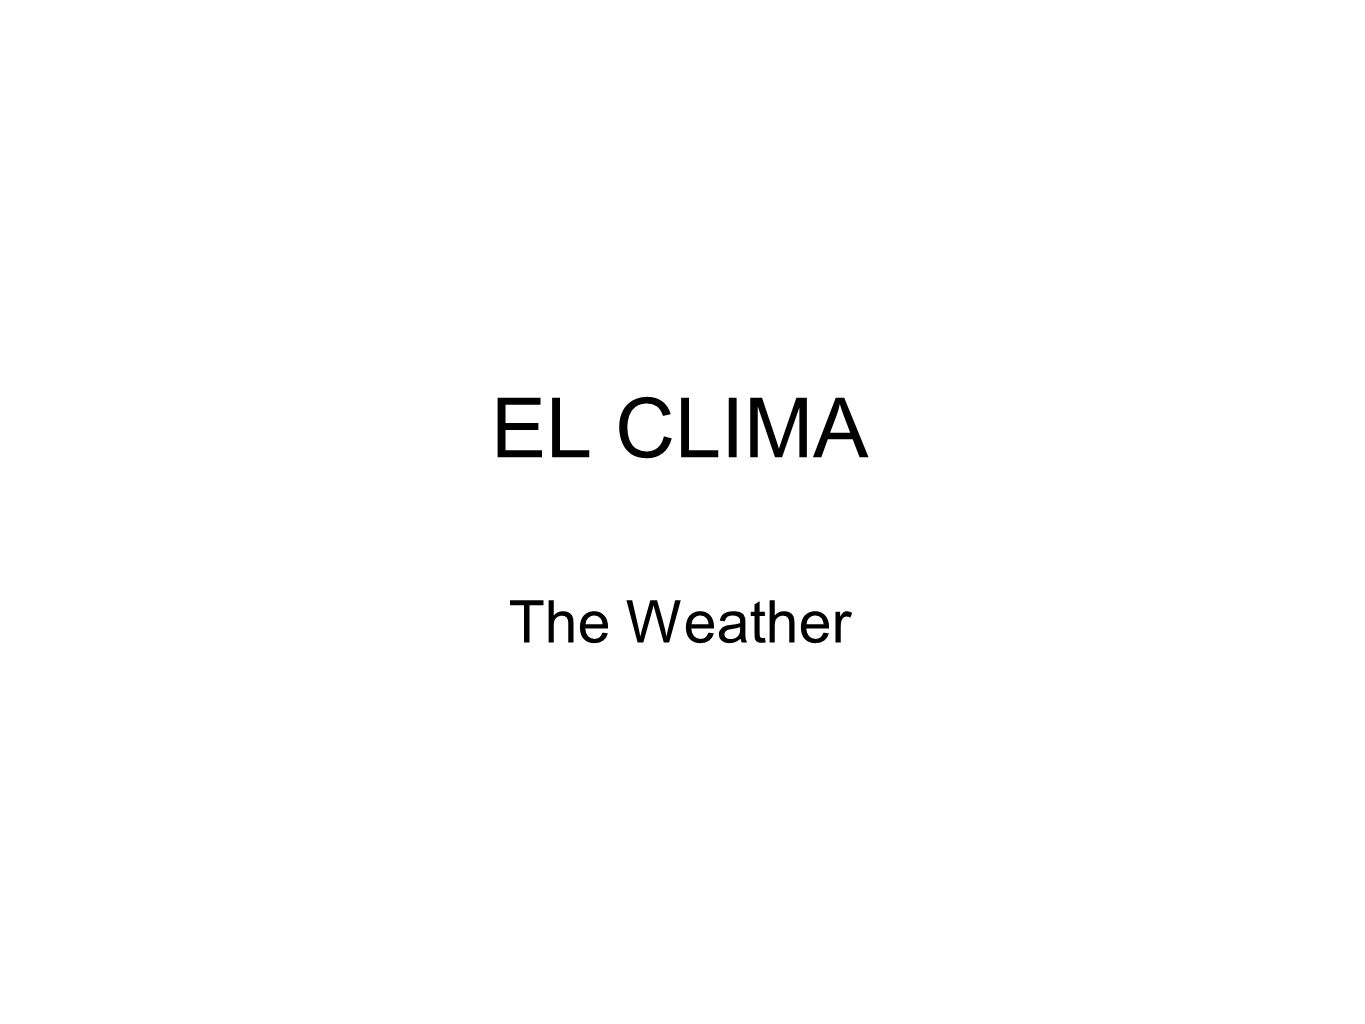 EL CLIMA The Weather